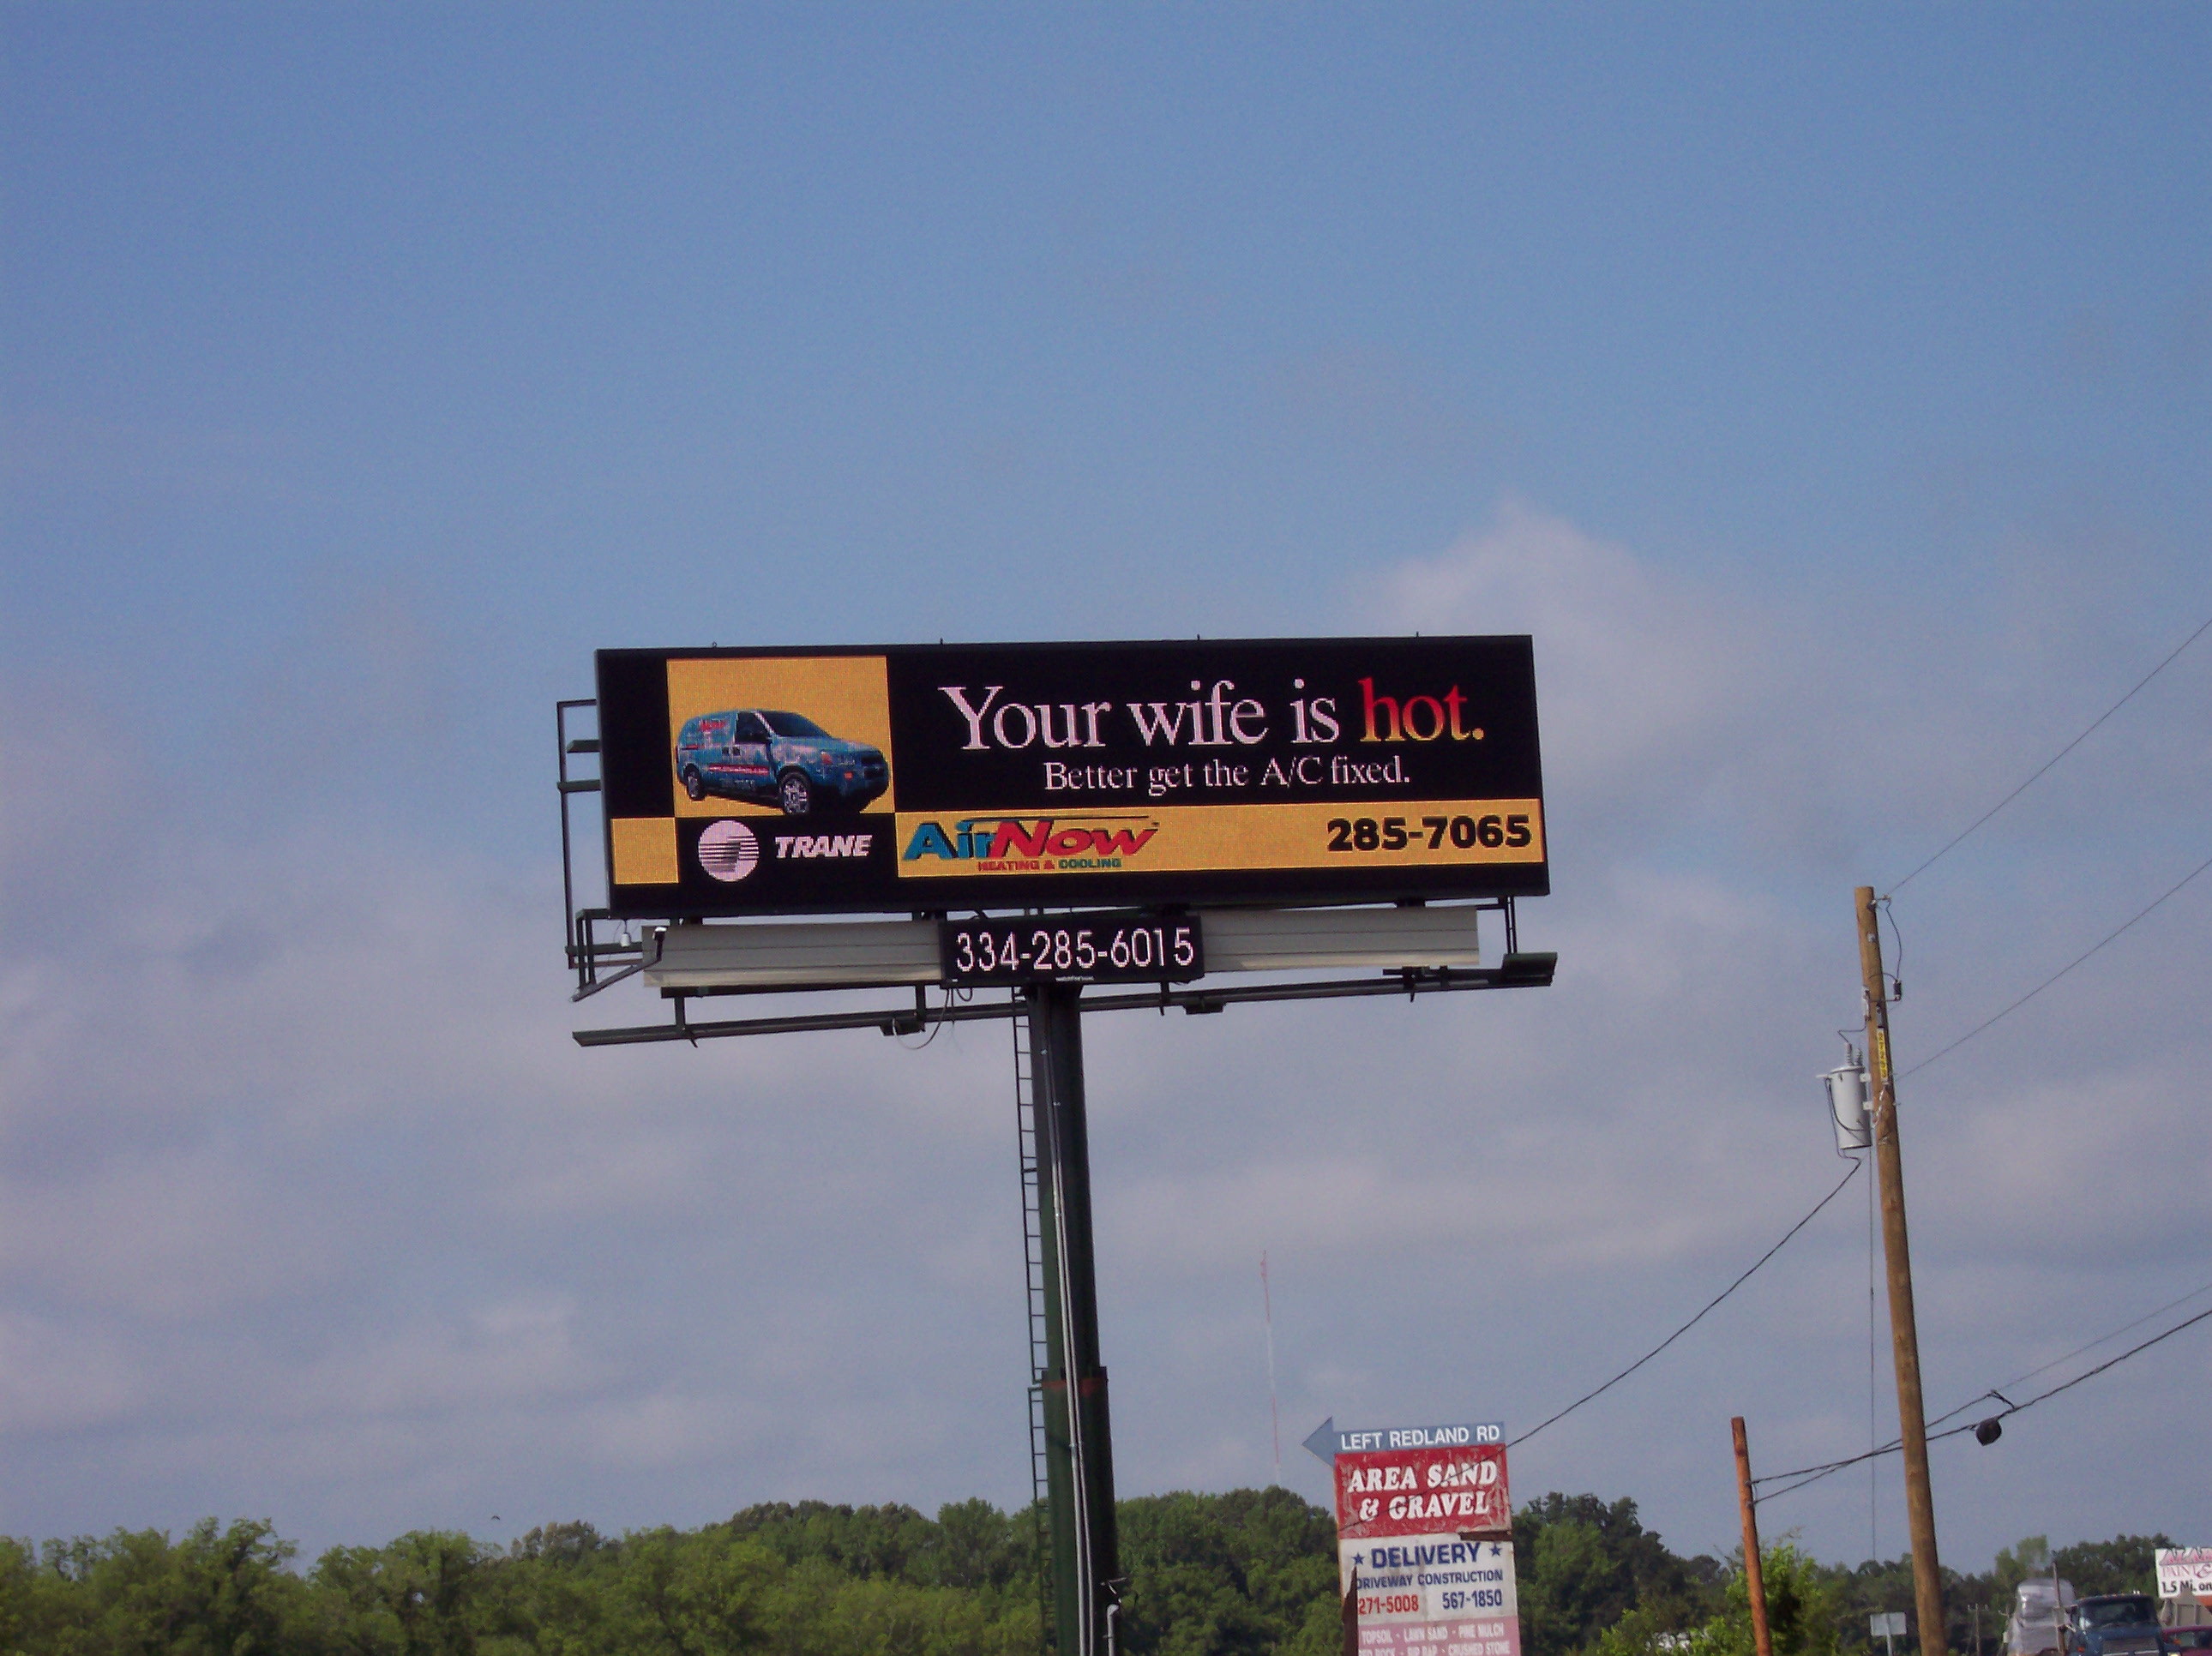 Vintage Media - digital billboard